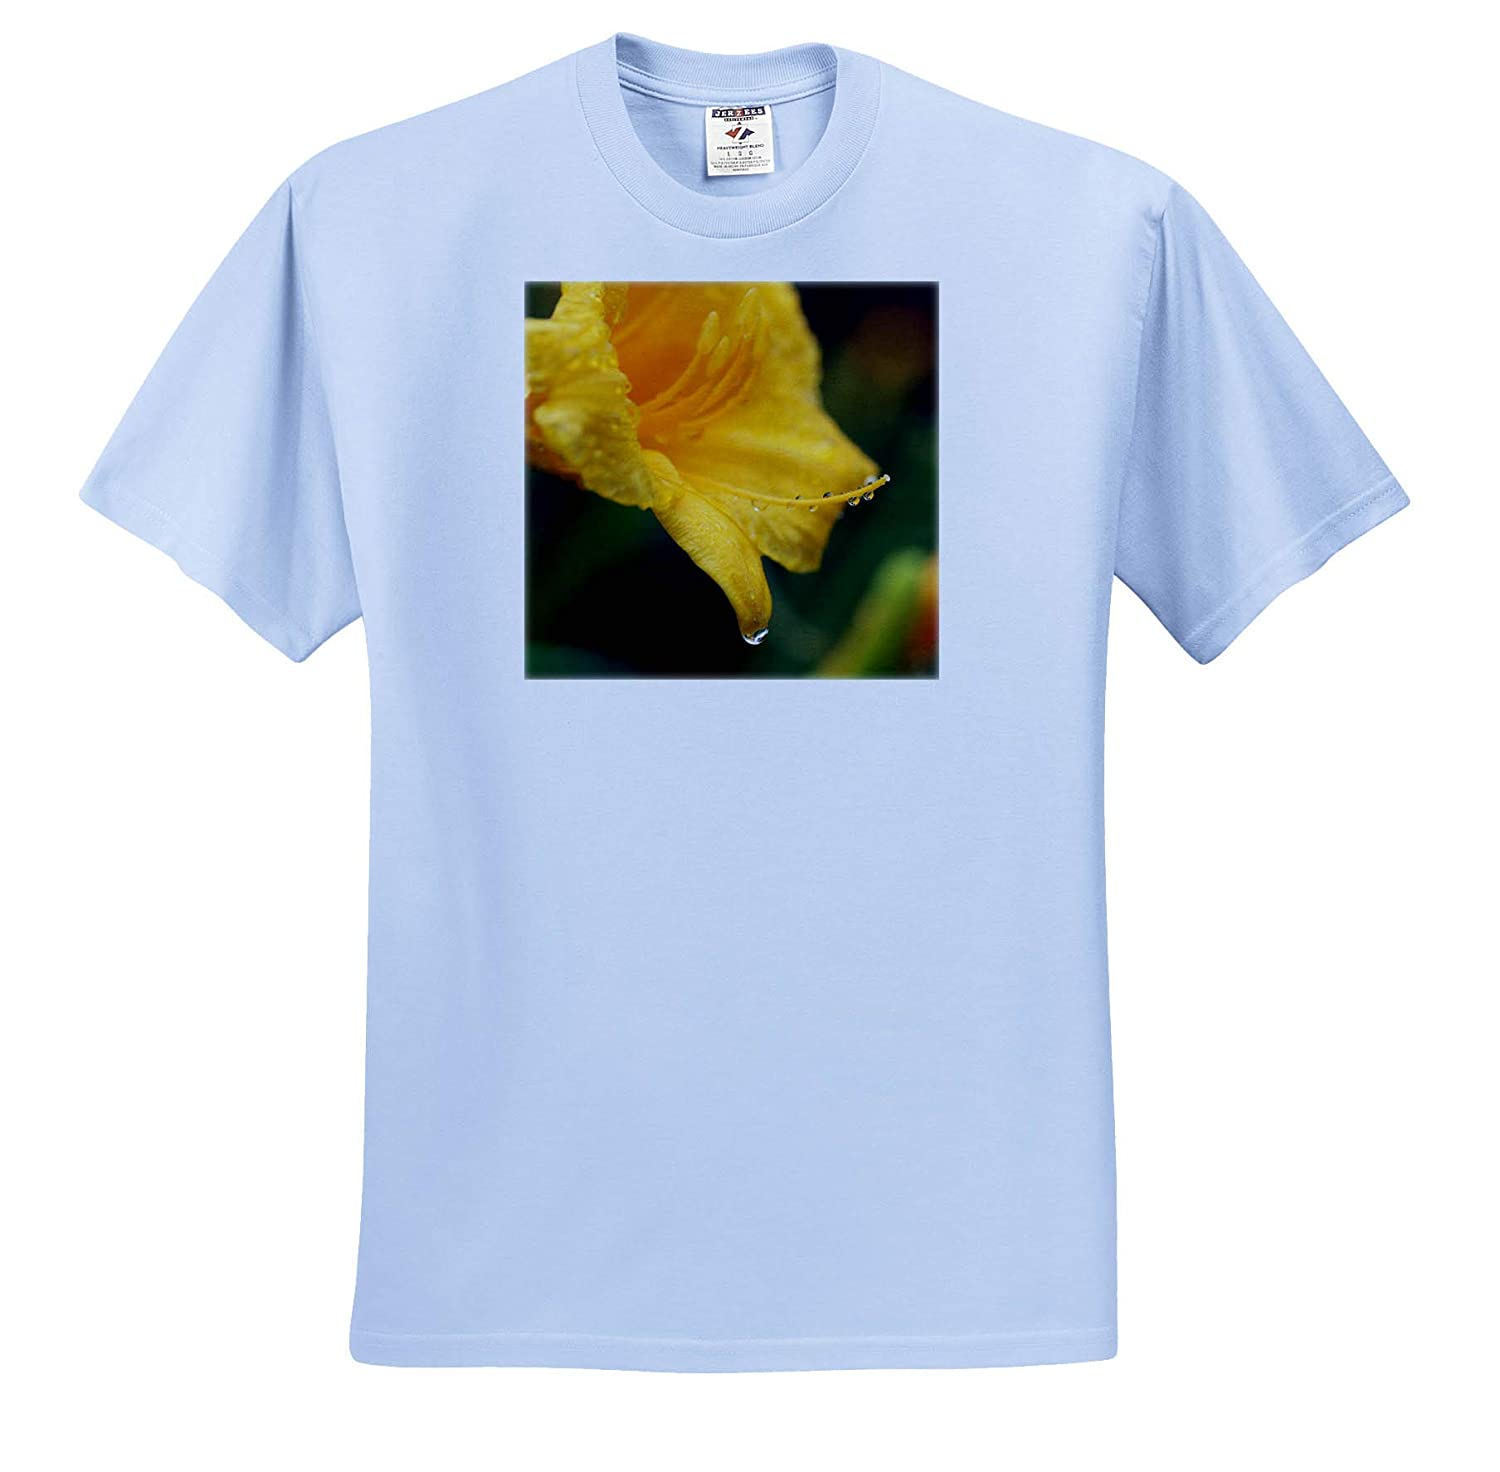 ts/_316748 Flowers Macro Photograph of a Yellow Daylily Immediately After The rain - Adult T-Shirt XL 3dRose Stamp City